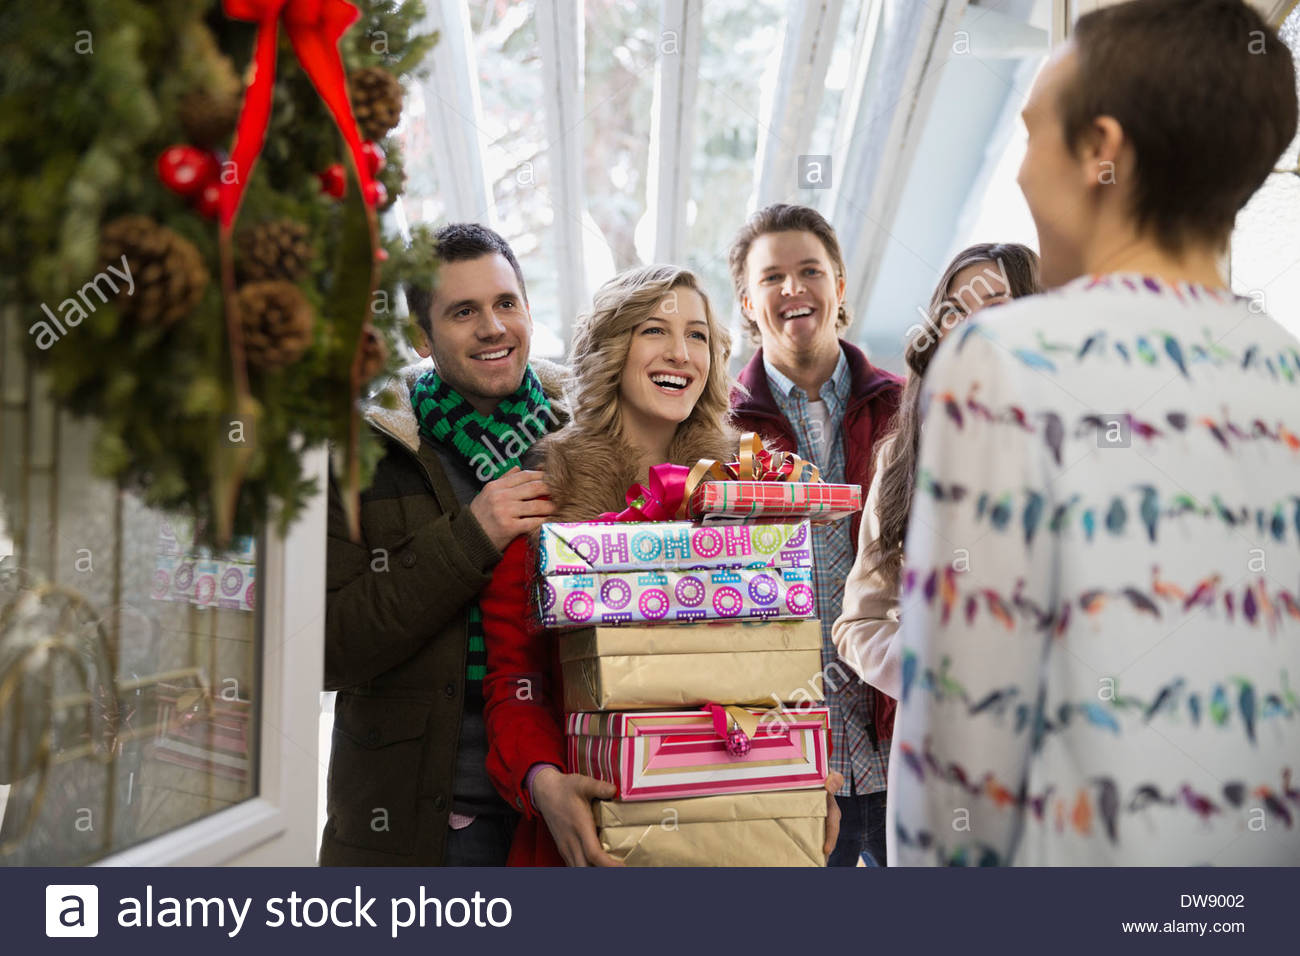 Guests arriving with Christmas gifts - Stock Image